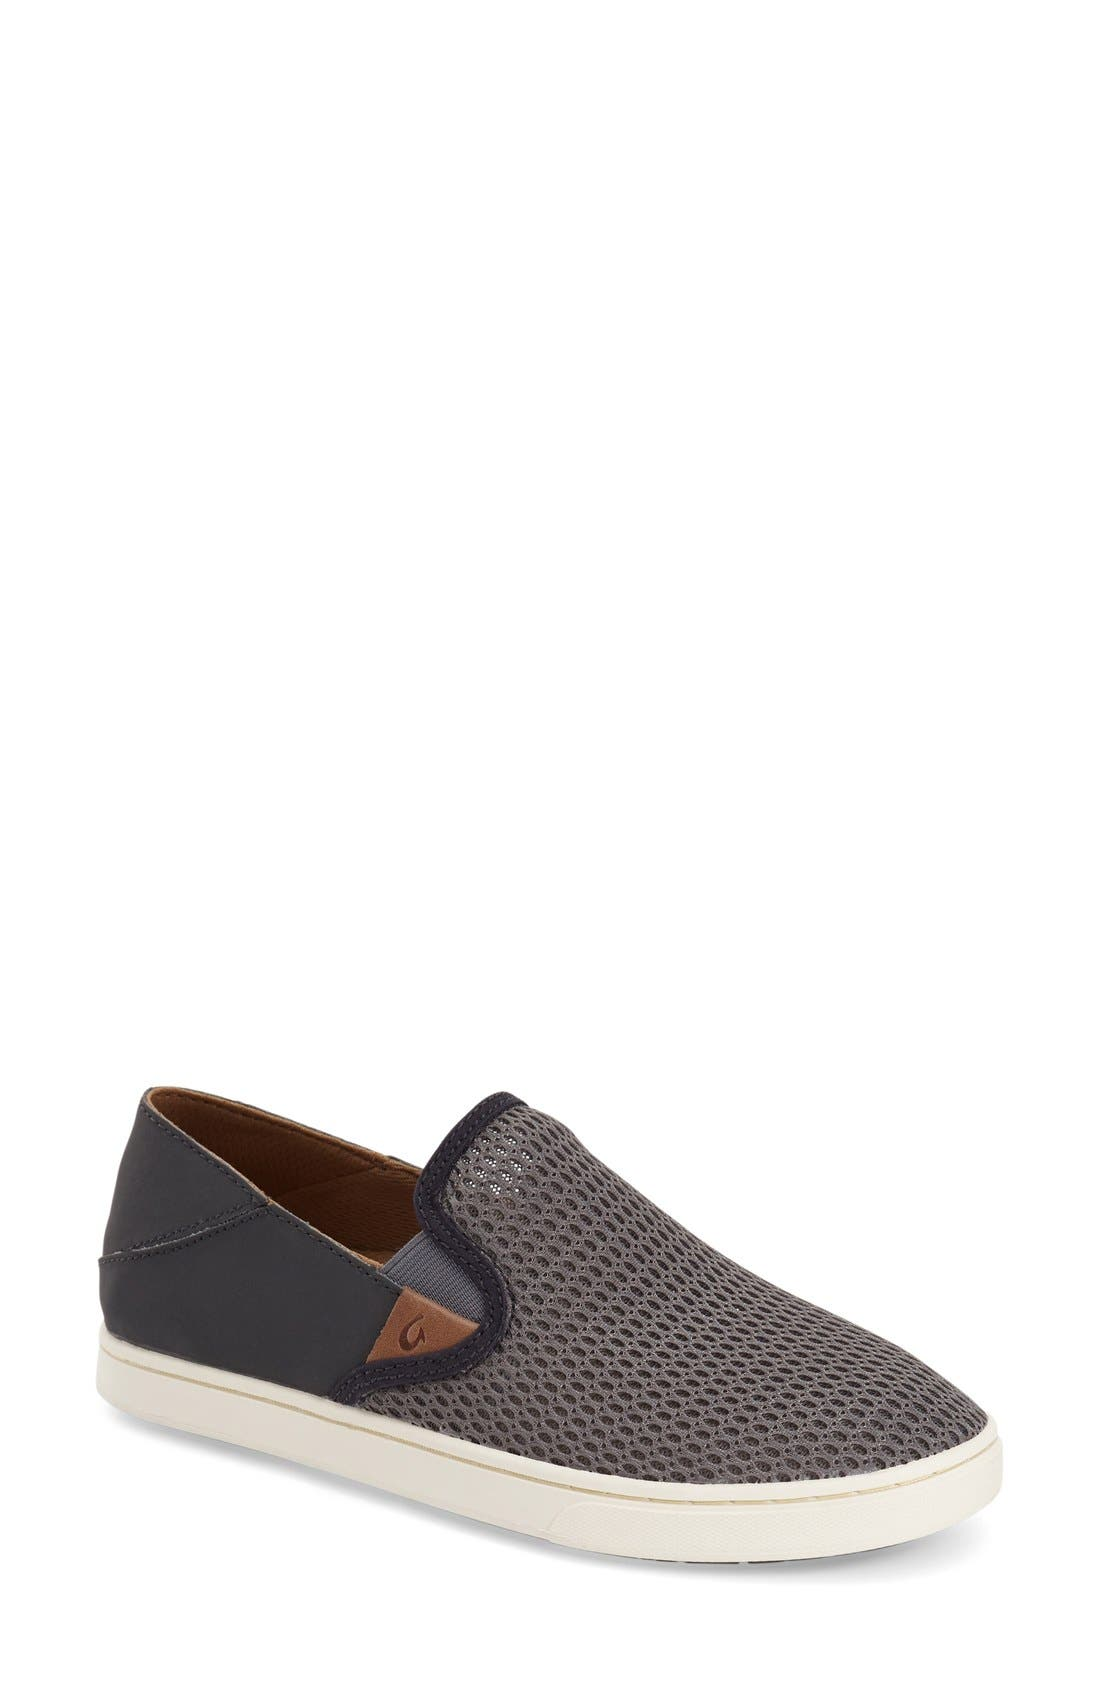 OluKai 'Pehuea' Slip-On Sneaker (Women)